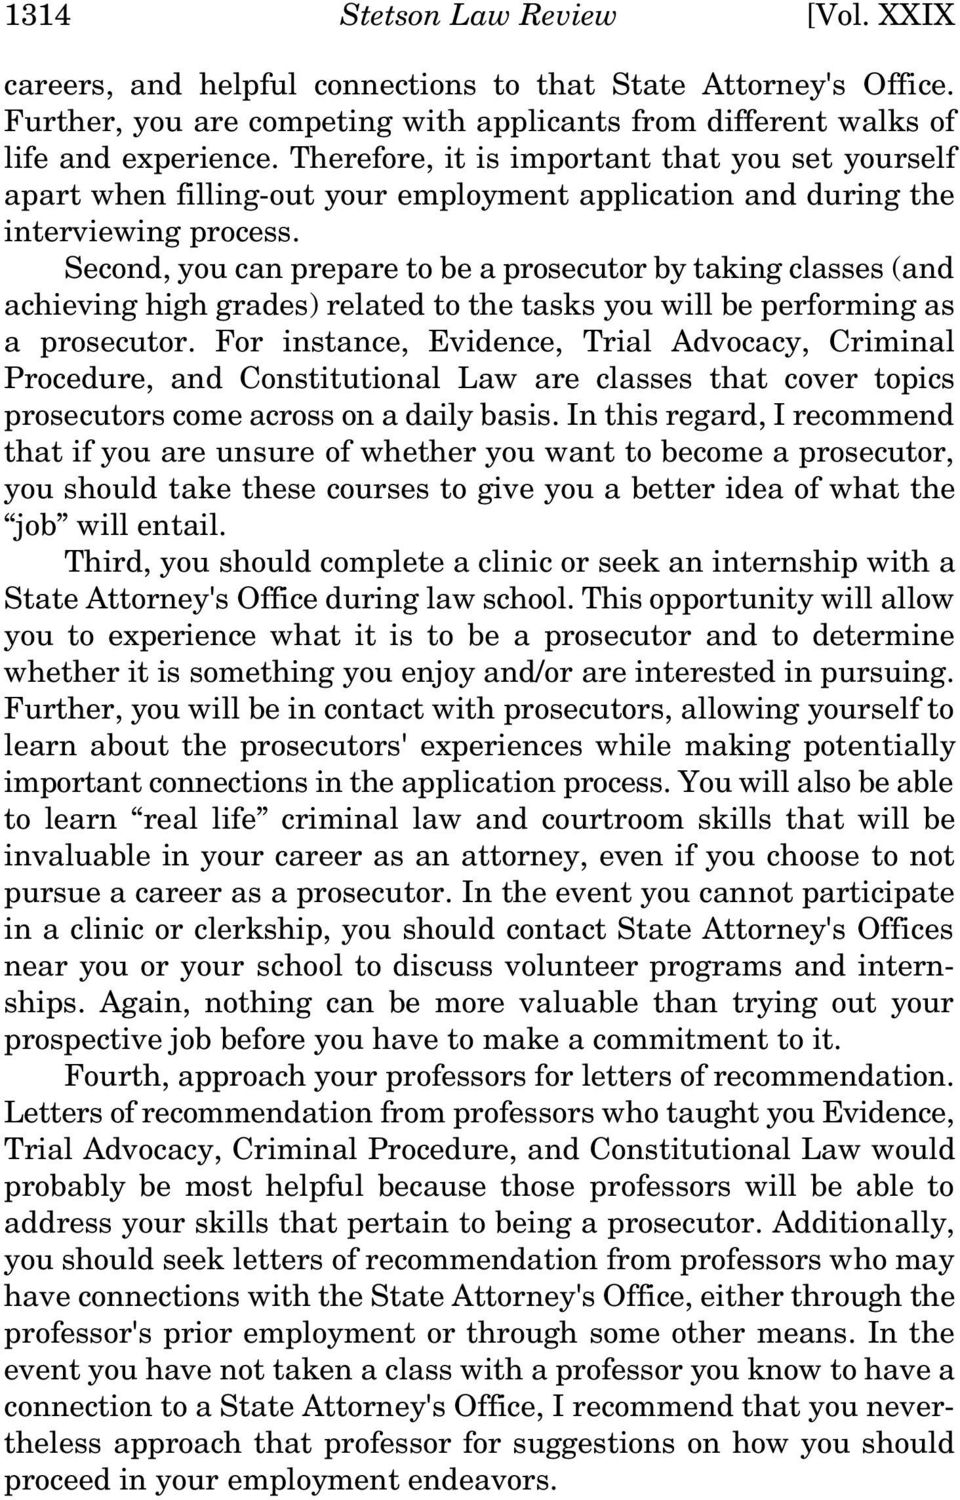 Second, you can prepare to be a prosecutor by taking classes (and achieving high grades) related to the tasks you will be performing as a prosecutor.